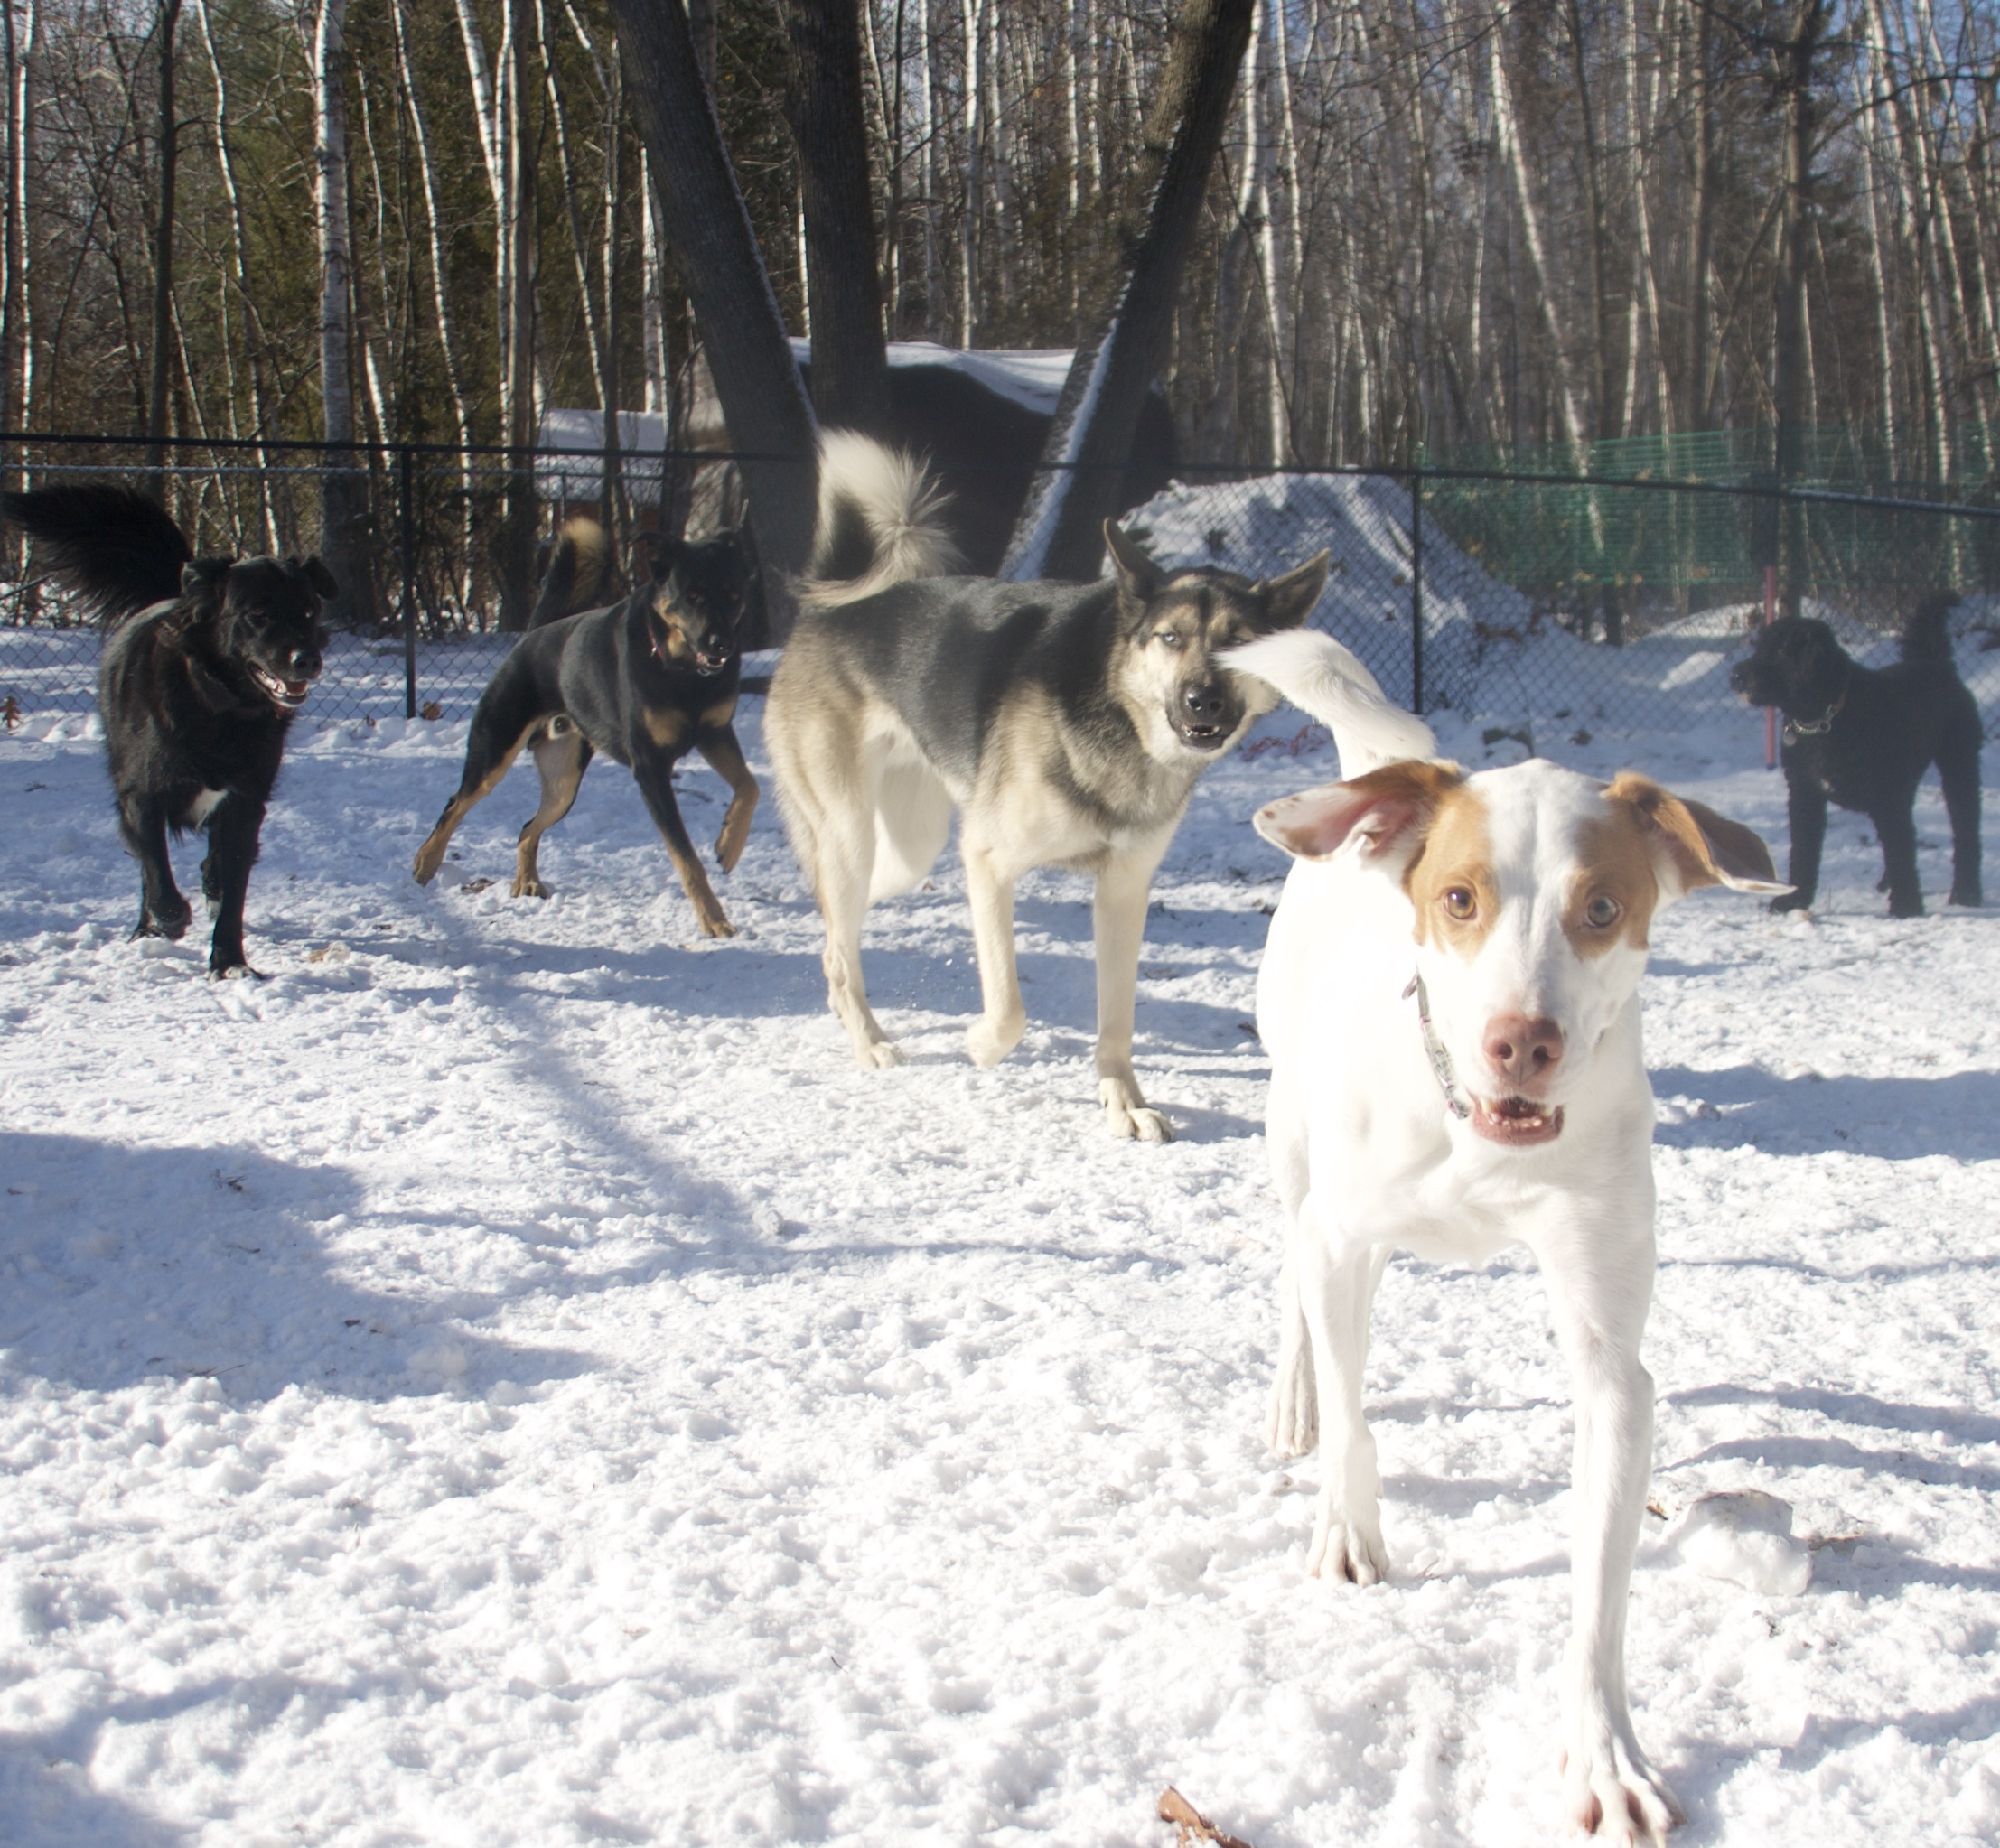 Dogs_snow_daycare